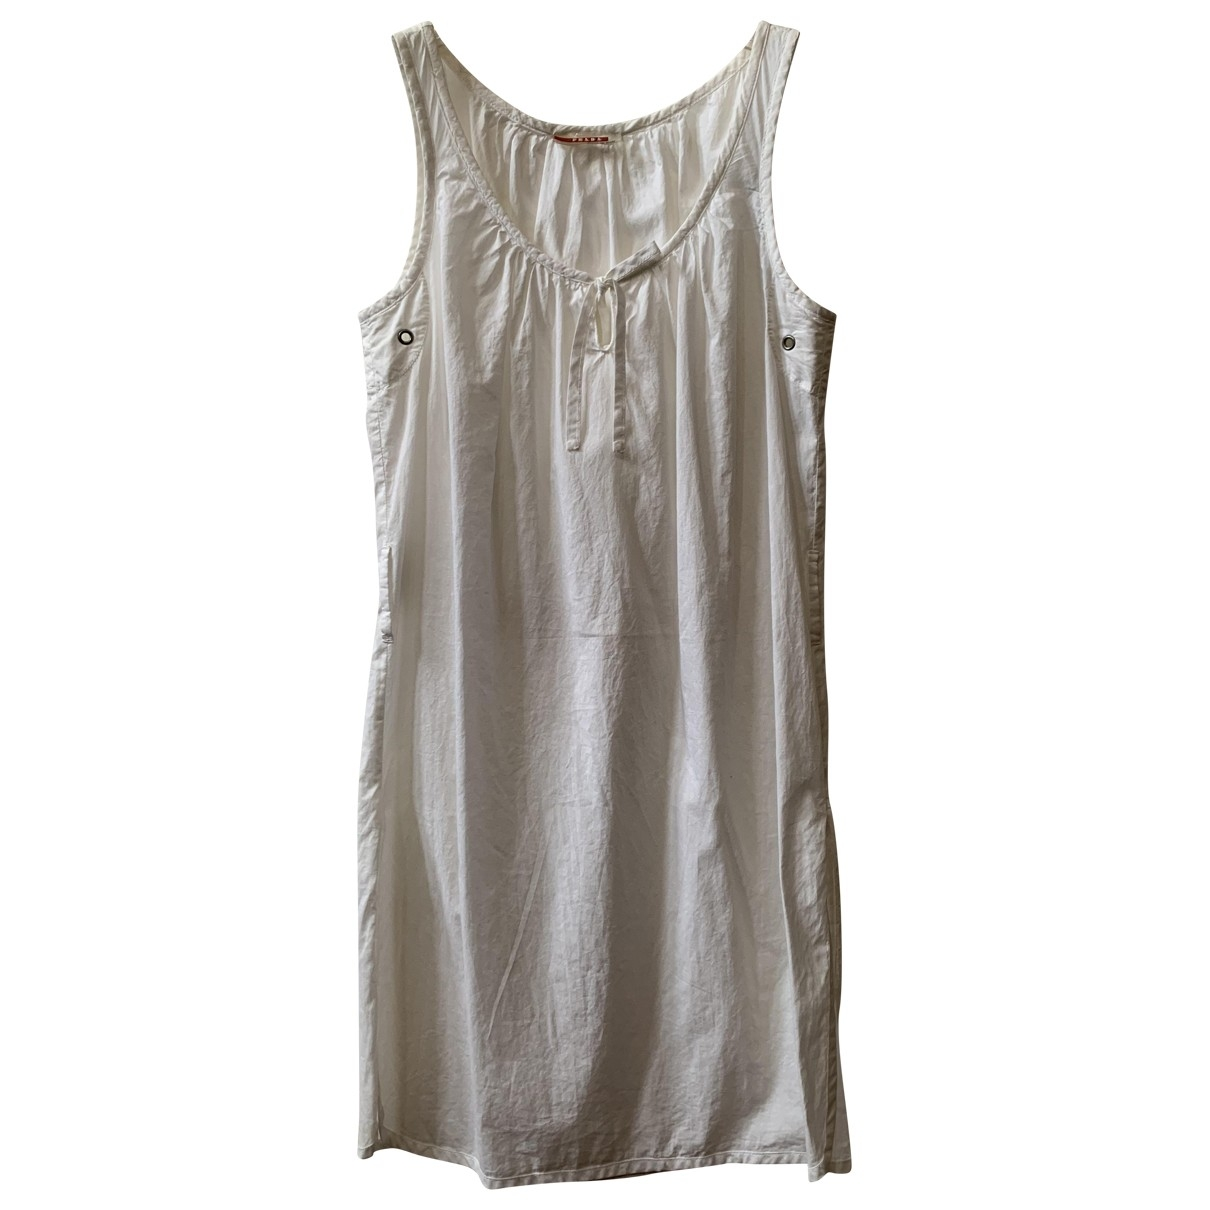 Prada \N White dress for Women S International